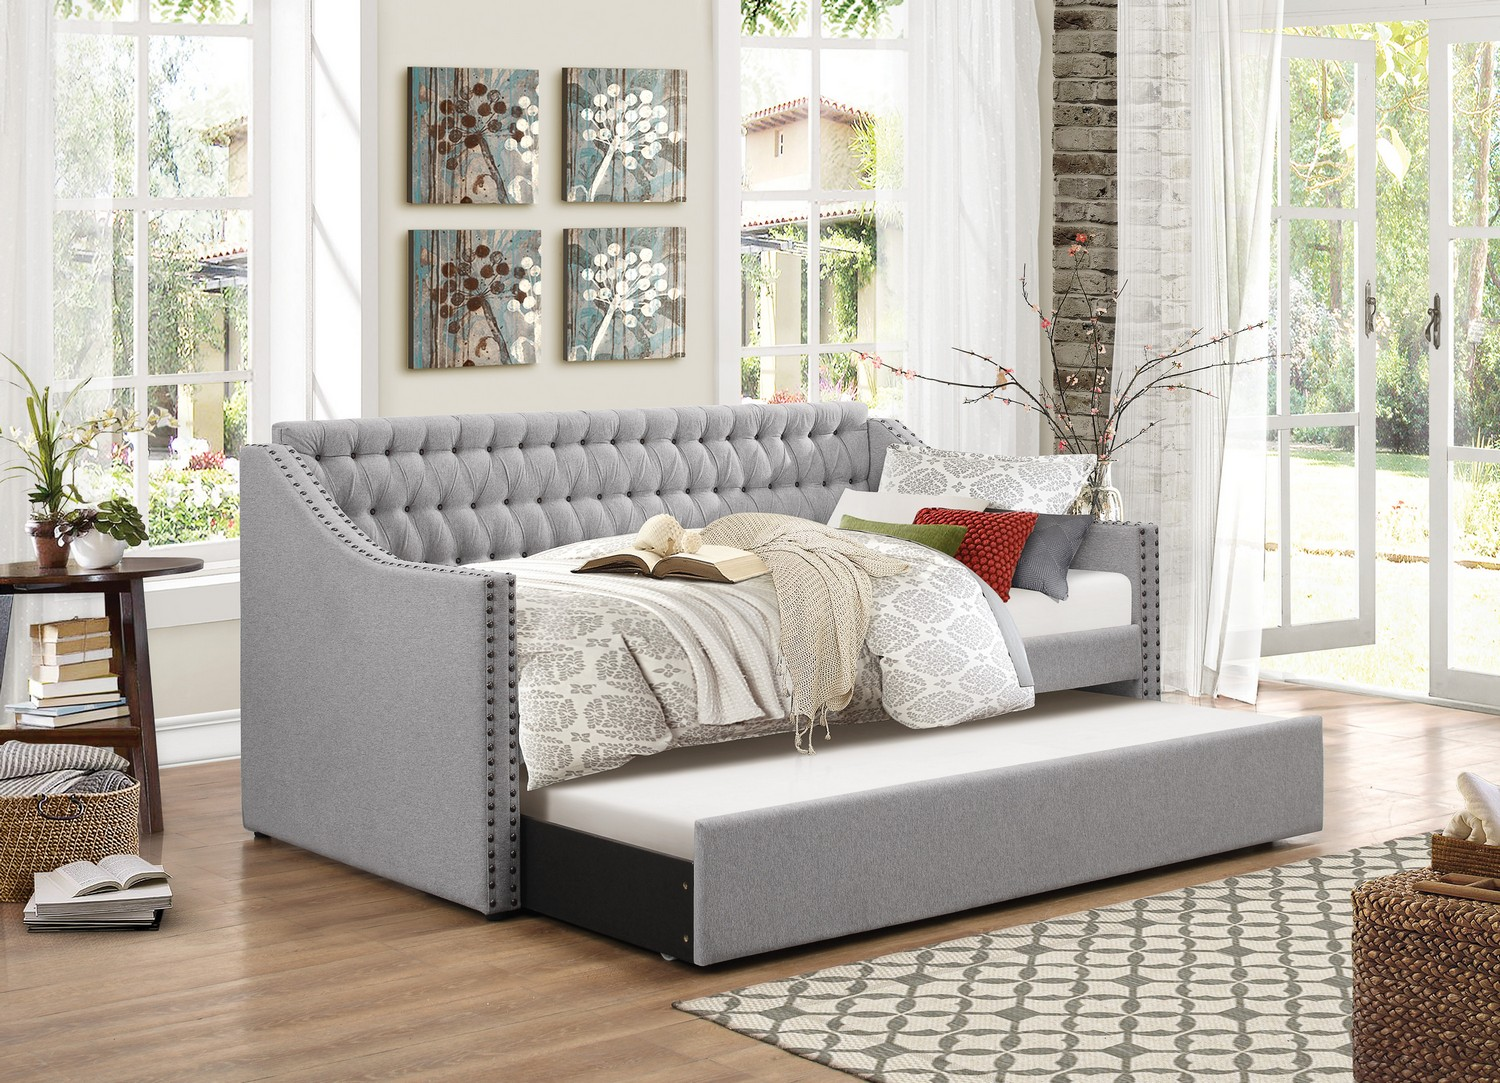 Homelegance Tulney Daybed With Trundle Grey 4966 At